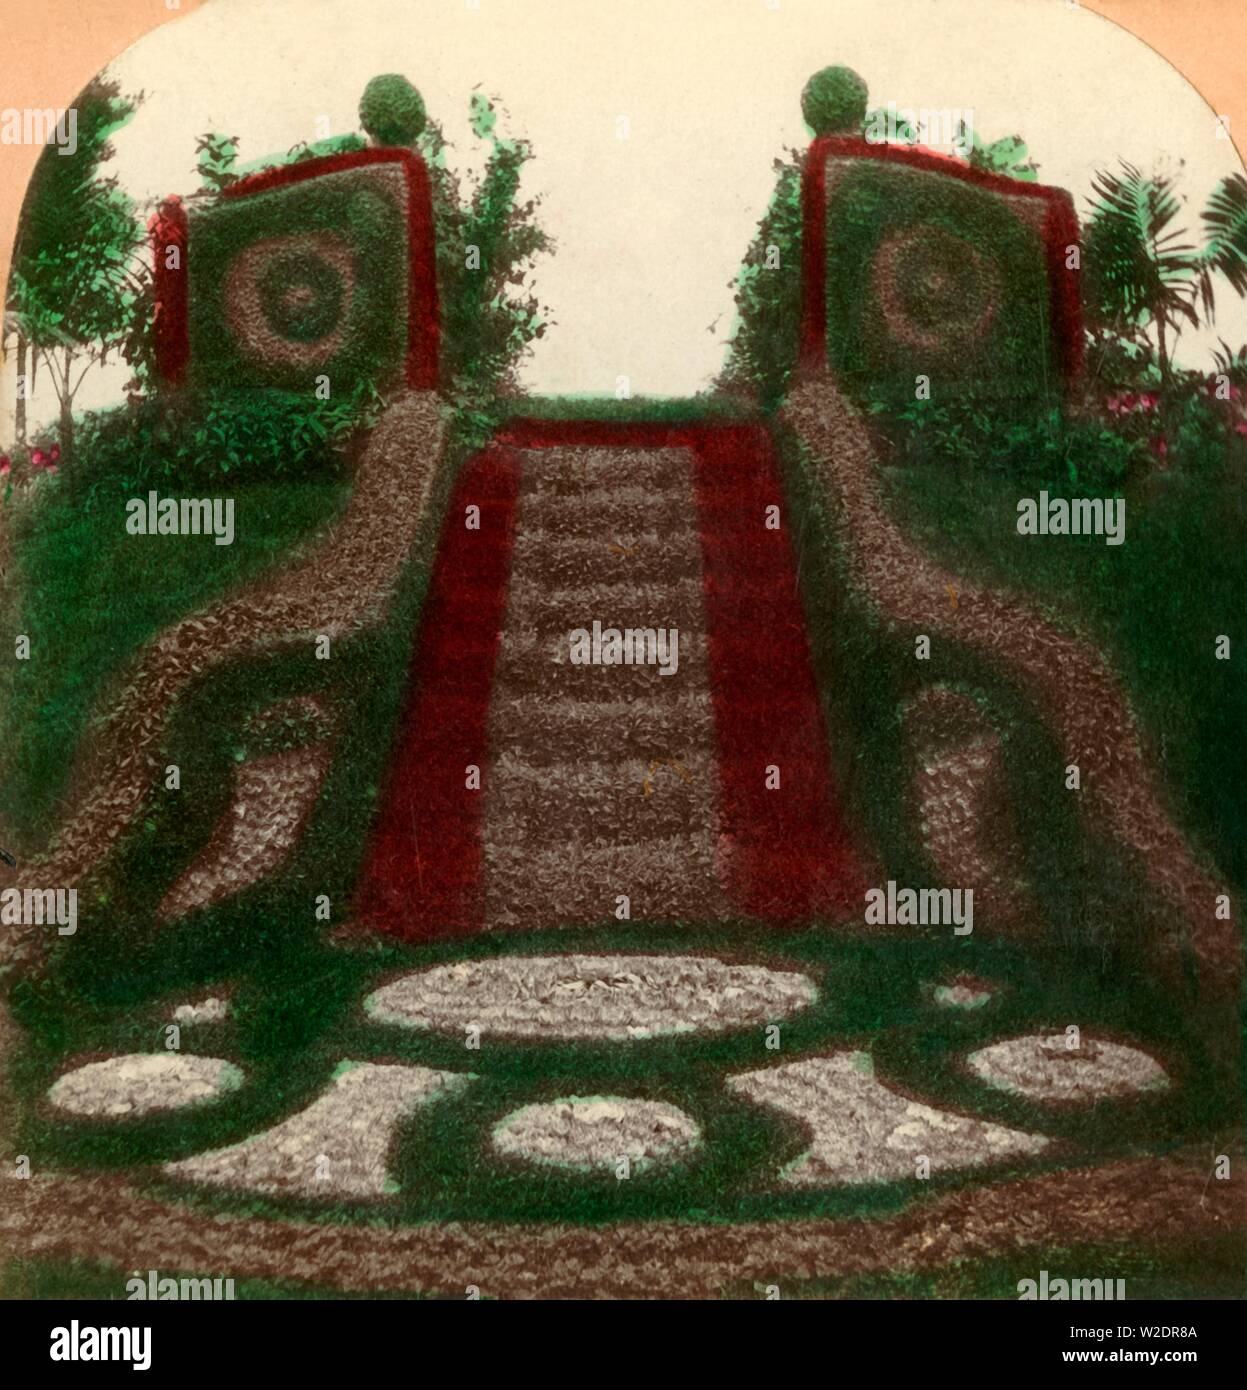 'Gates Ajar, Como Park, St. Paul, Minn., U.S.A.', 1897. Floral display inSt Paul, Minnesota. Gated stairway dating from 1894, covered in carpet bedding. Stereocard. [Keystone View Company, USA, 1897] - Stock Image